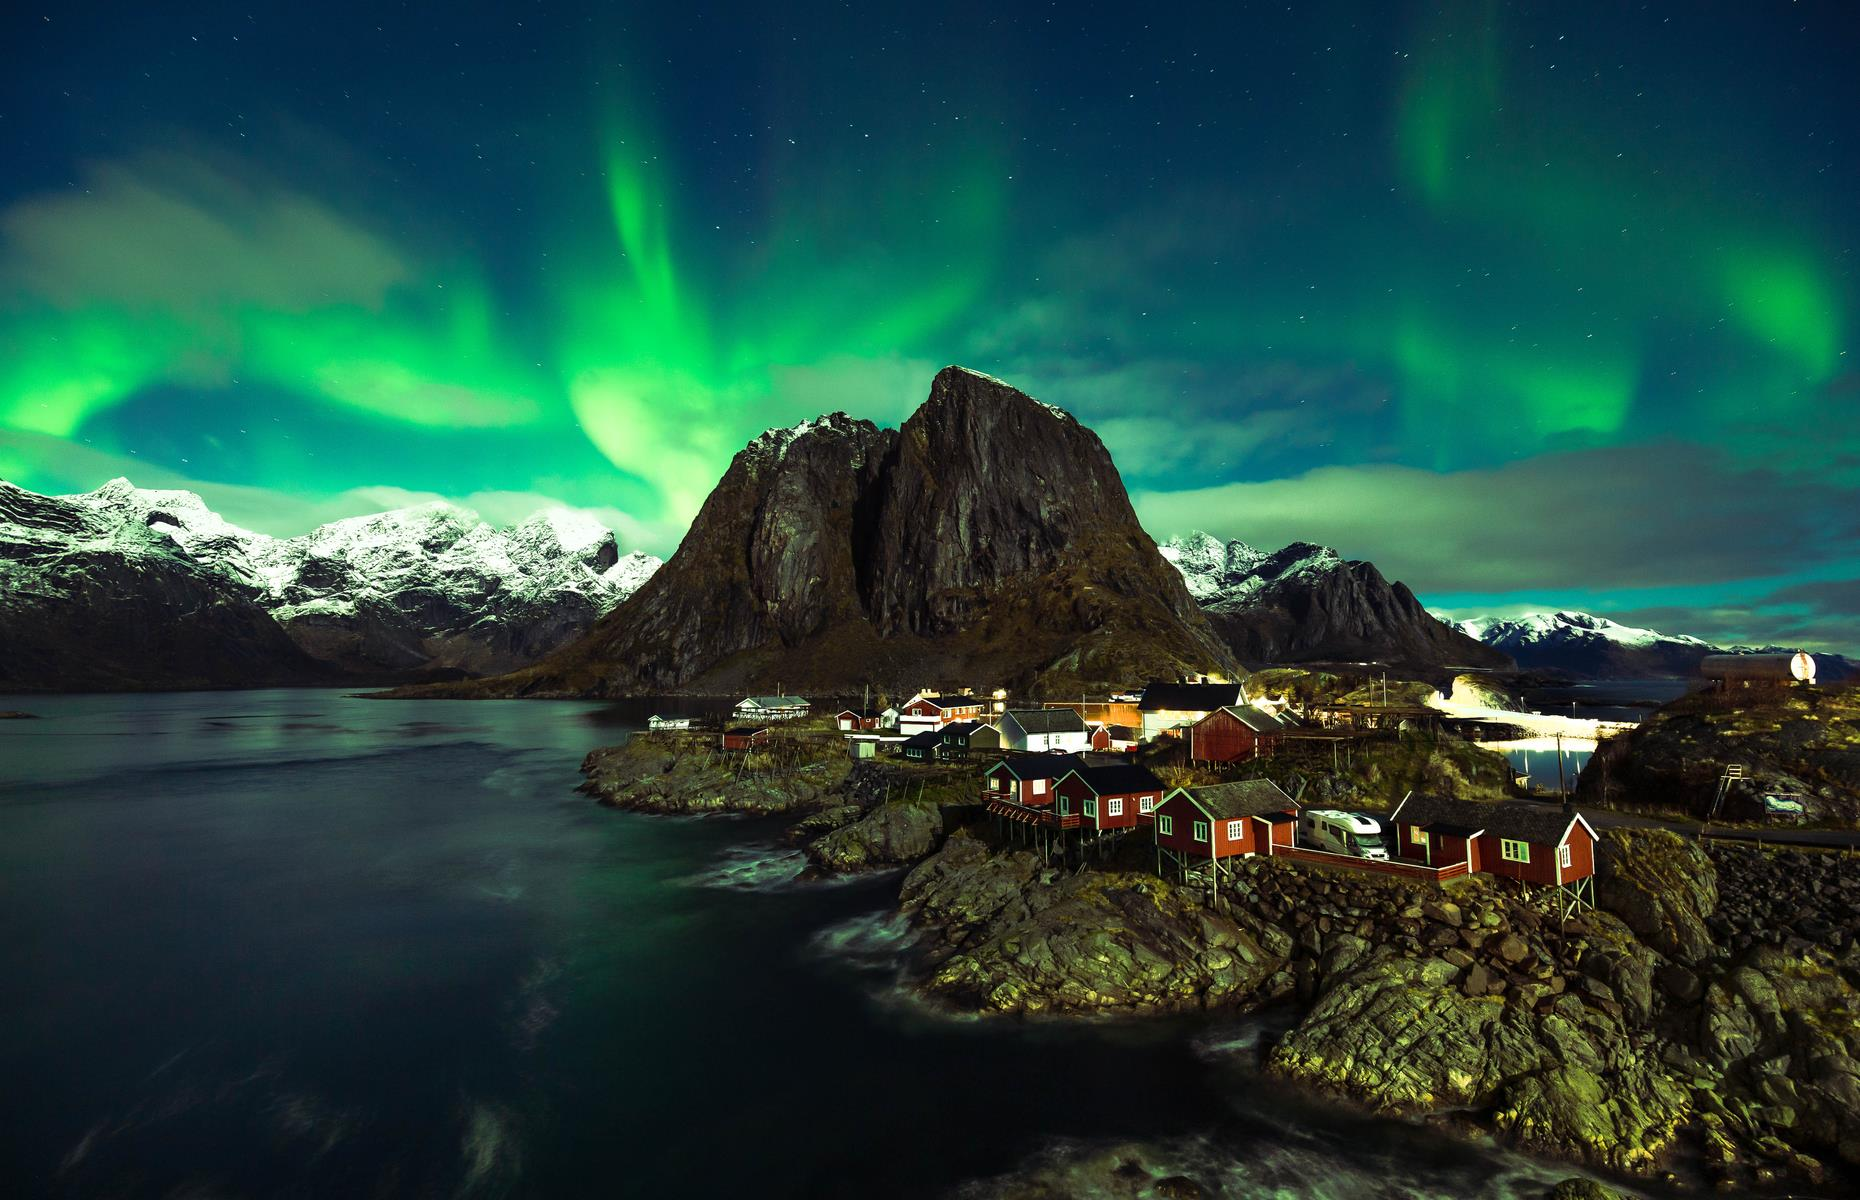 Slide 22 of 25: In Norway's Lofoten archipelago, a serene island chain sits proudly within the Arctic Circle, offering jagged peaks, calm waters and picturesque fishing villages like Hamnøy (pictured). From here the Northern Lights are a frequent sight from August to October. Now check out these 13 unexpected places where you can see the Northern Lights.